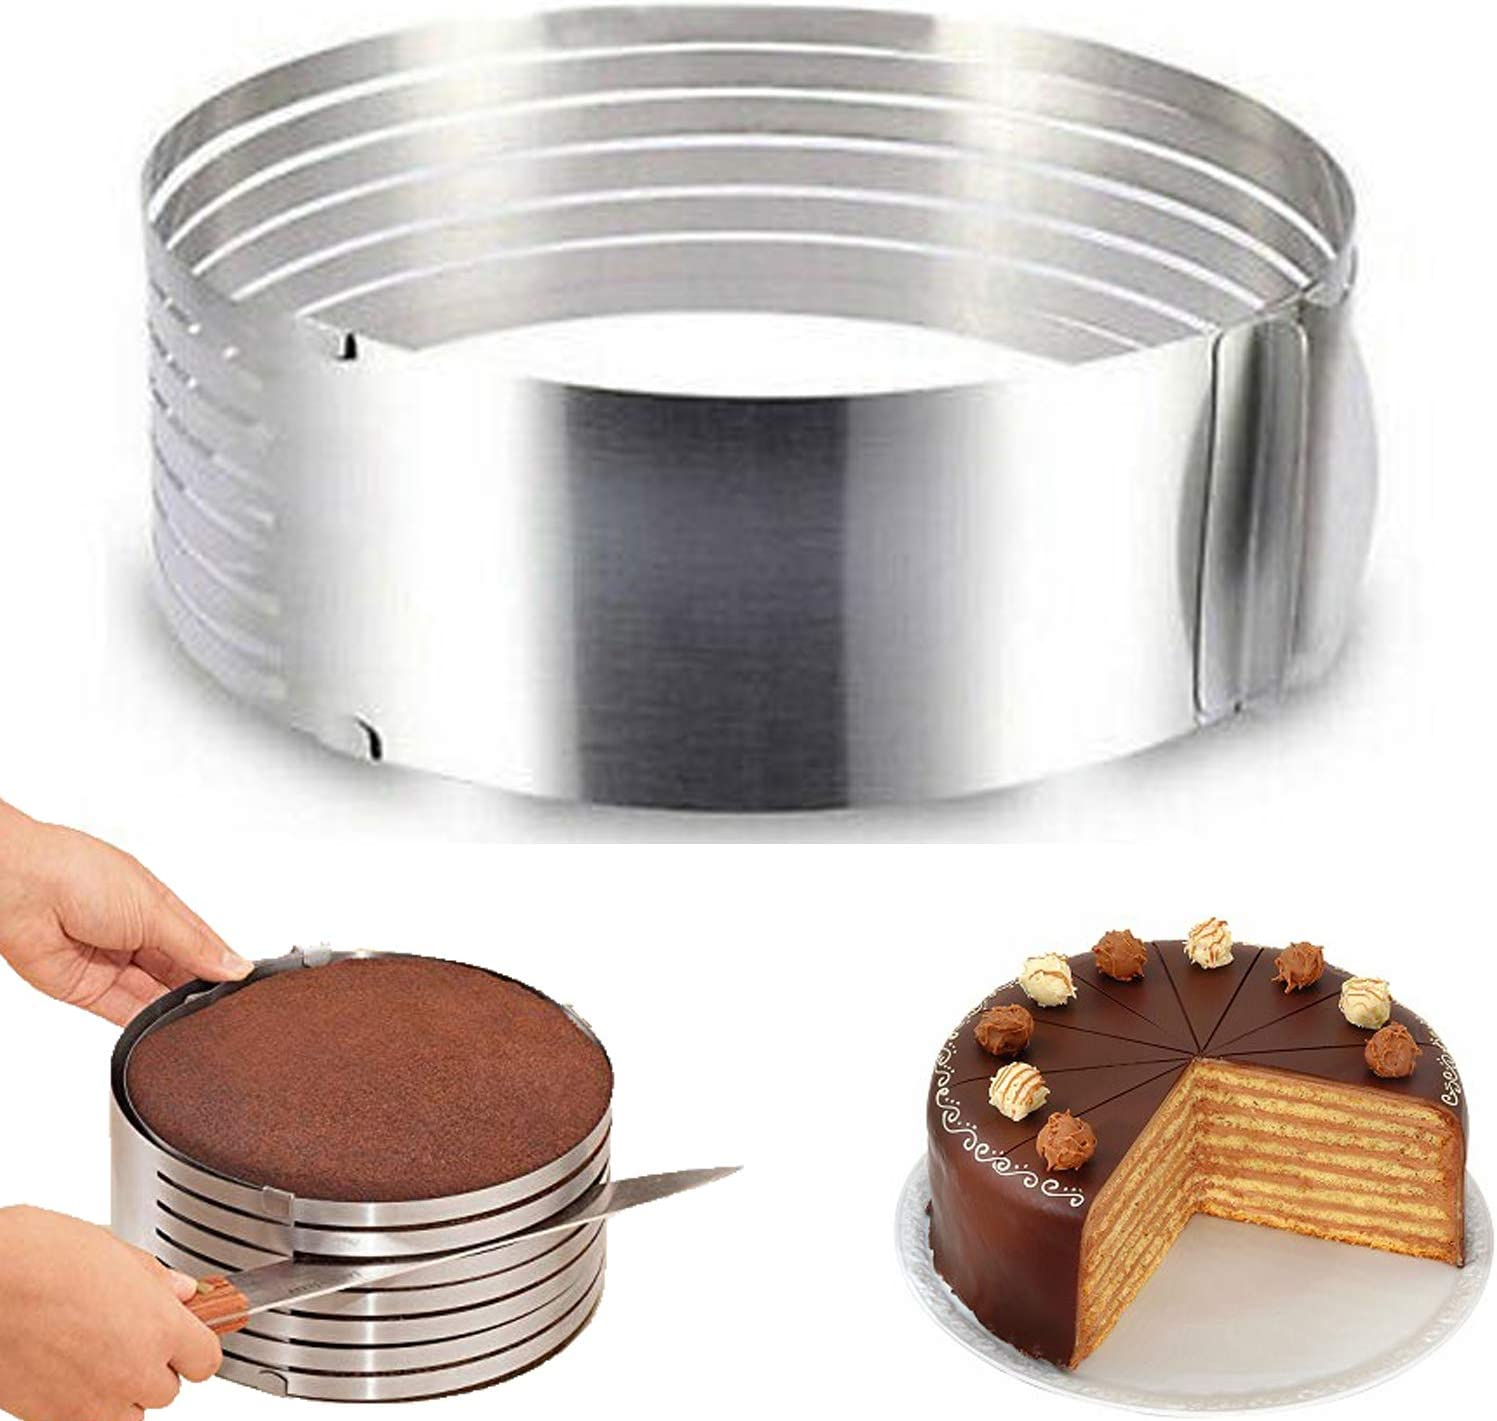 9 to 12 Adjustable Mousse Cake Mold Stainless Steel Circle Mousse Bread Cake Slicer Mold Cut Tool